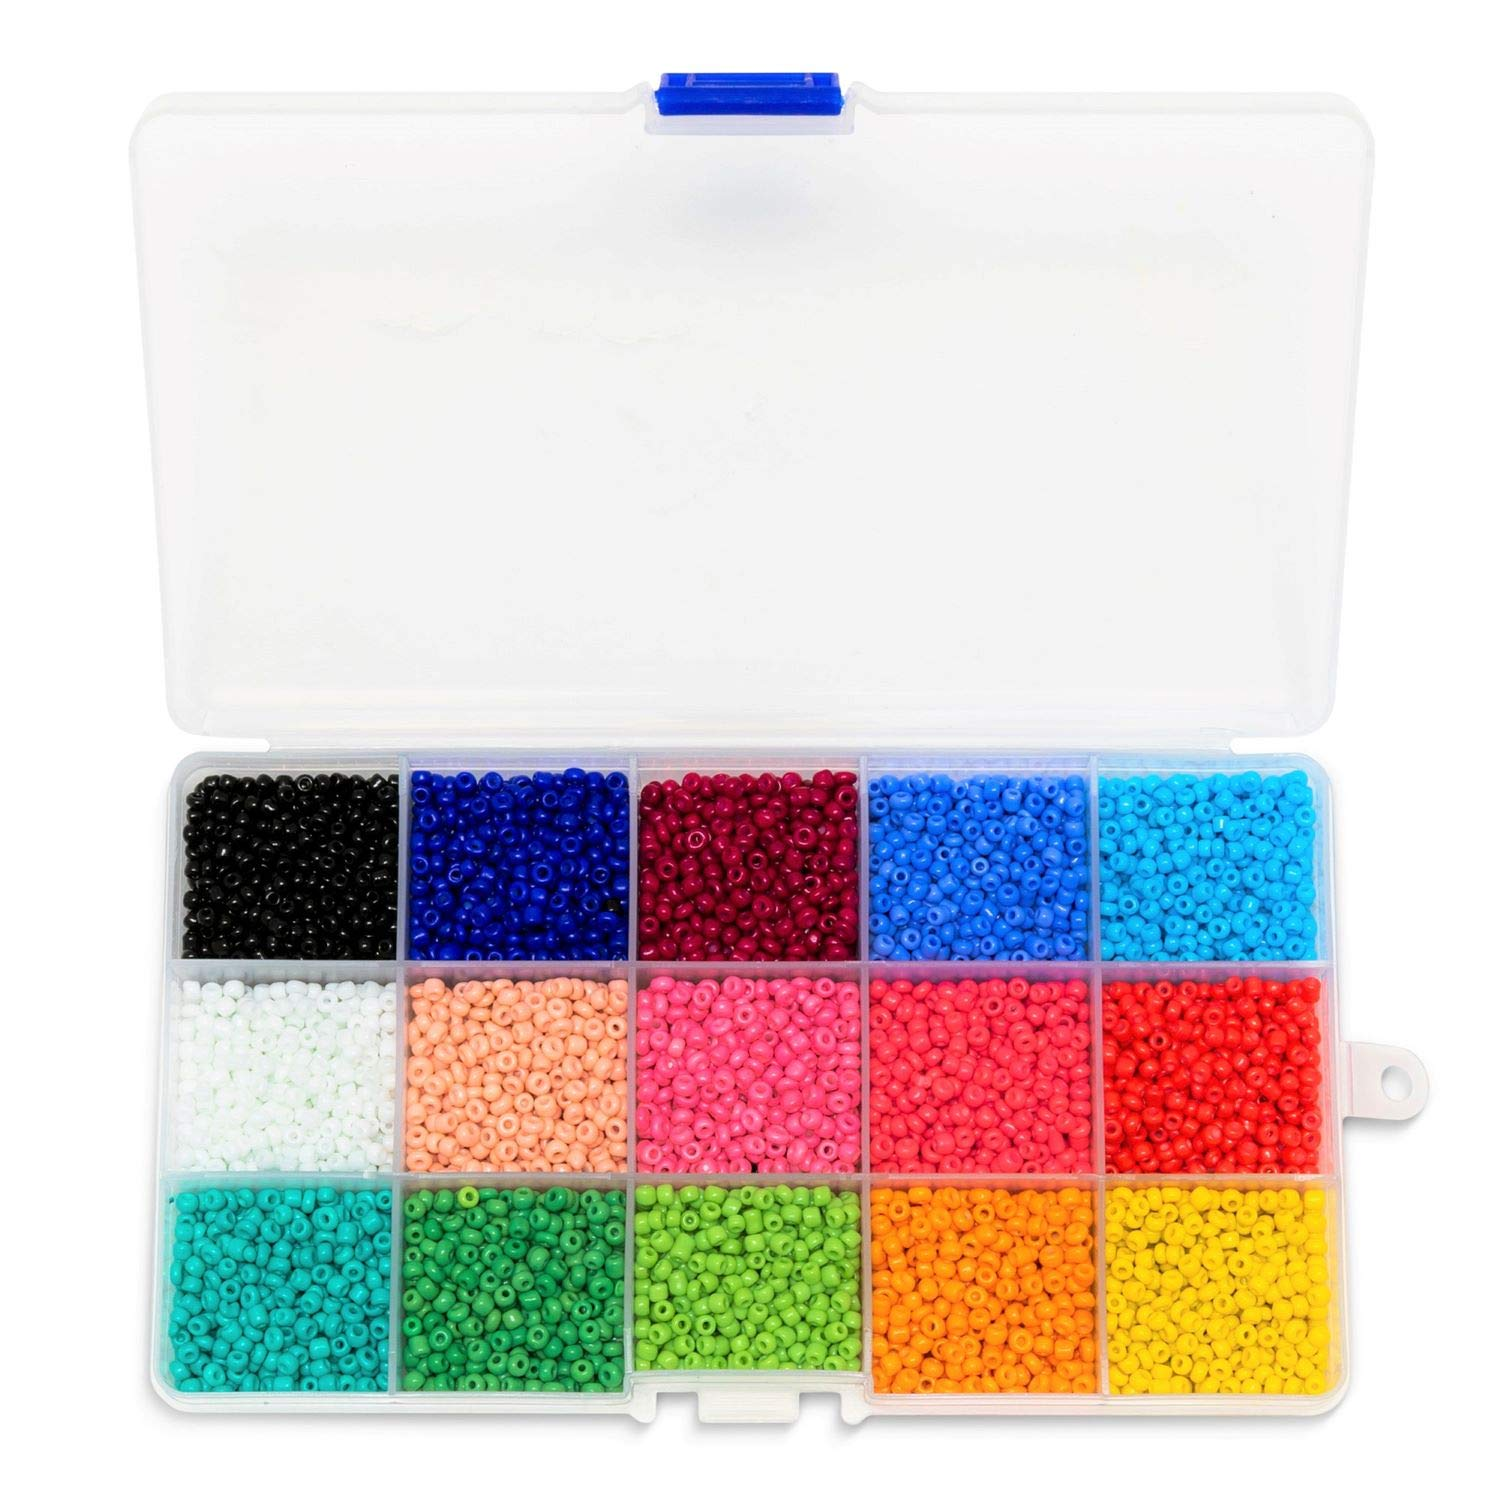 Seed Bead Kit for Girls Feb.7 Jewelry Kits for Adults 7500 Colorful Bracelets Making Kits Rainbow Beads for Making Jewelry and Box Kit